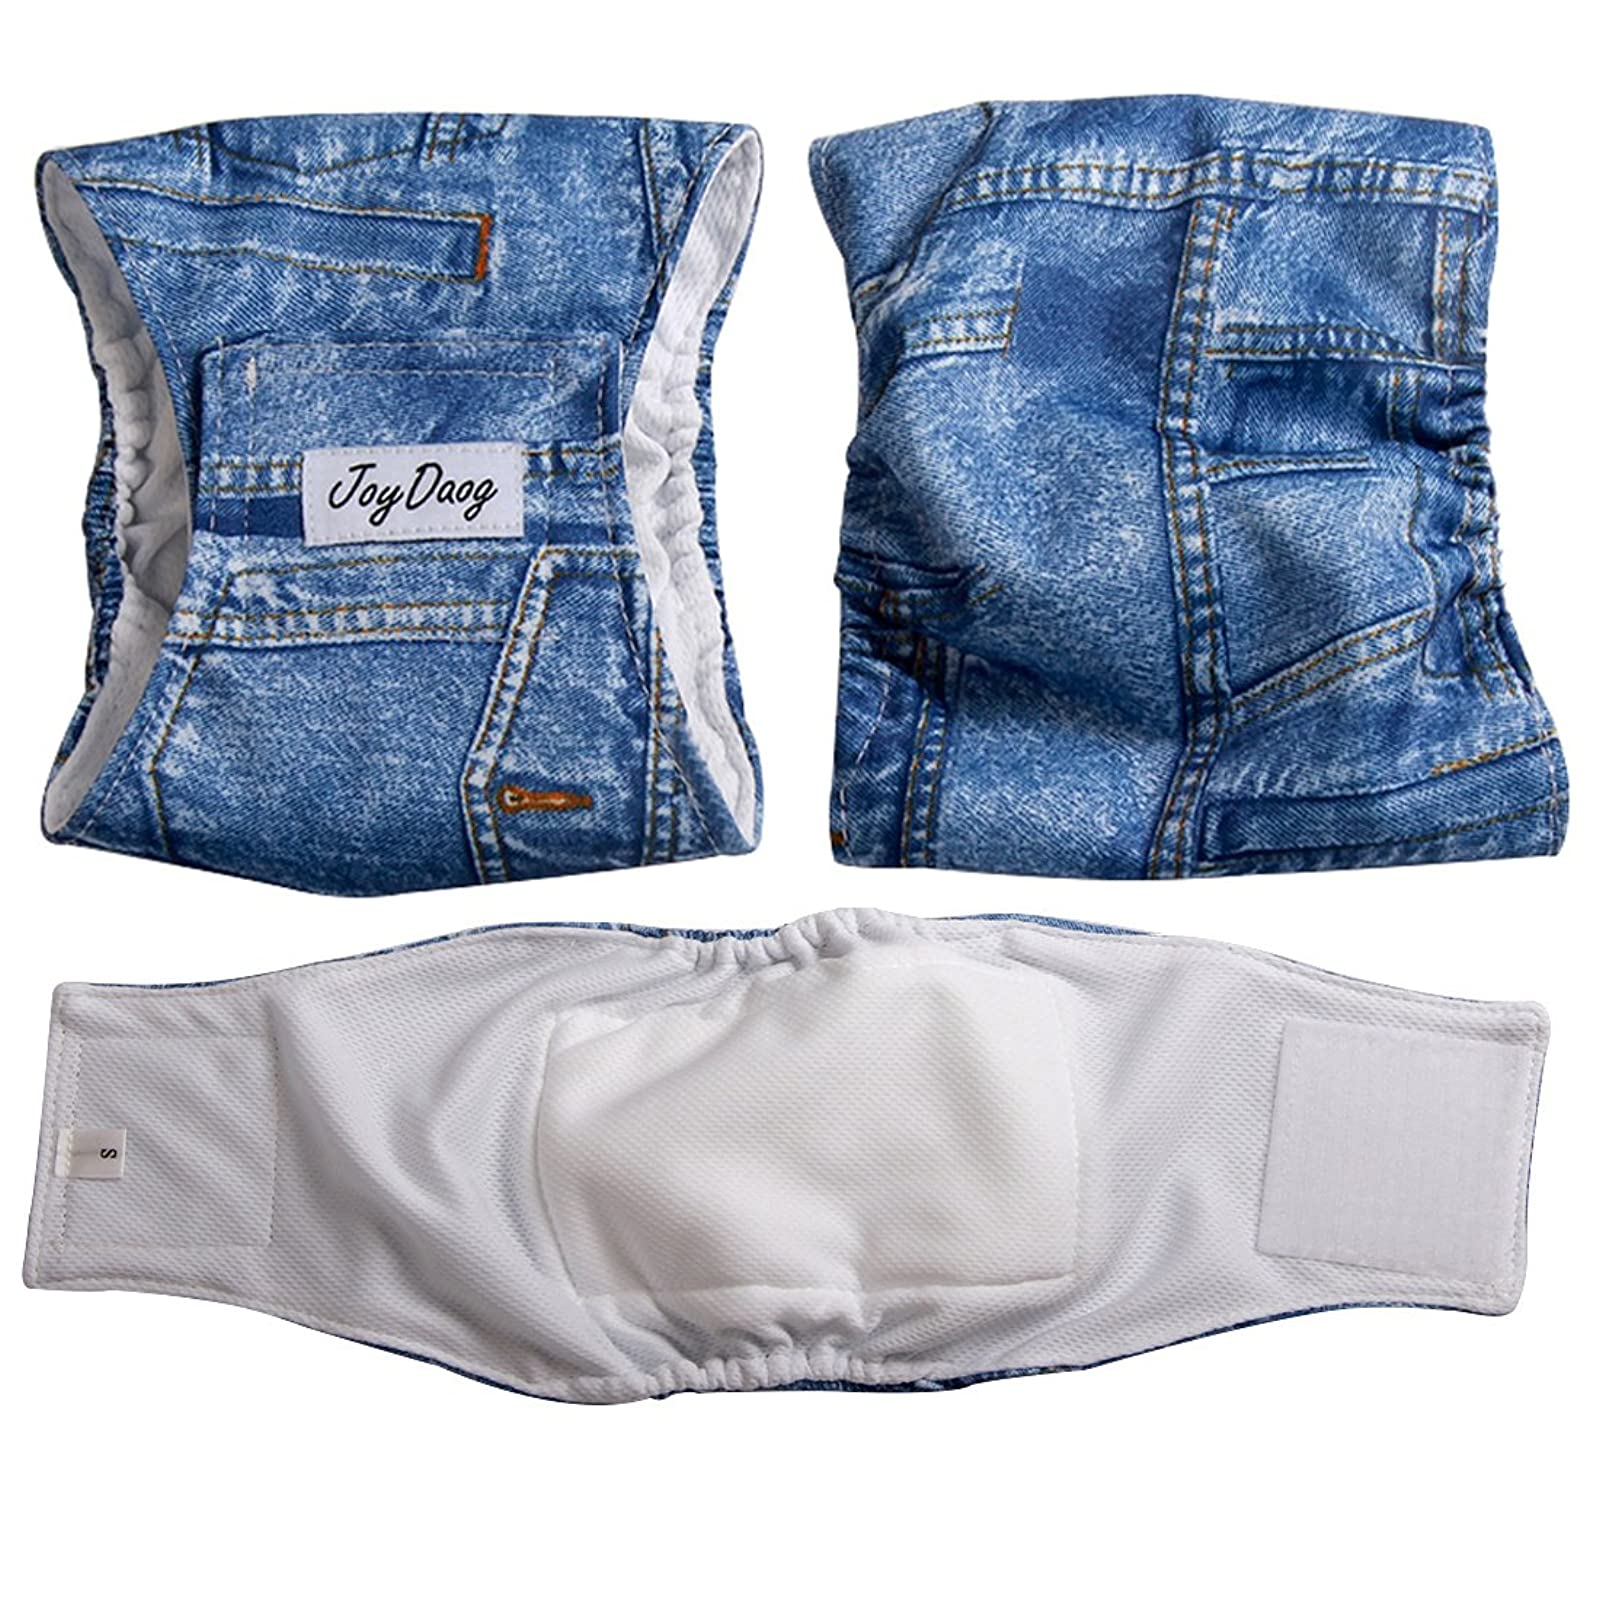 JoyDaog Jean Belly BandsSmall Dog Diapers Male - 1